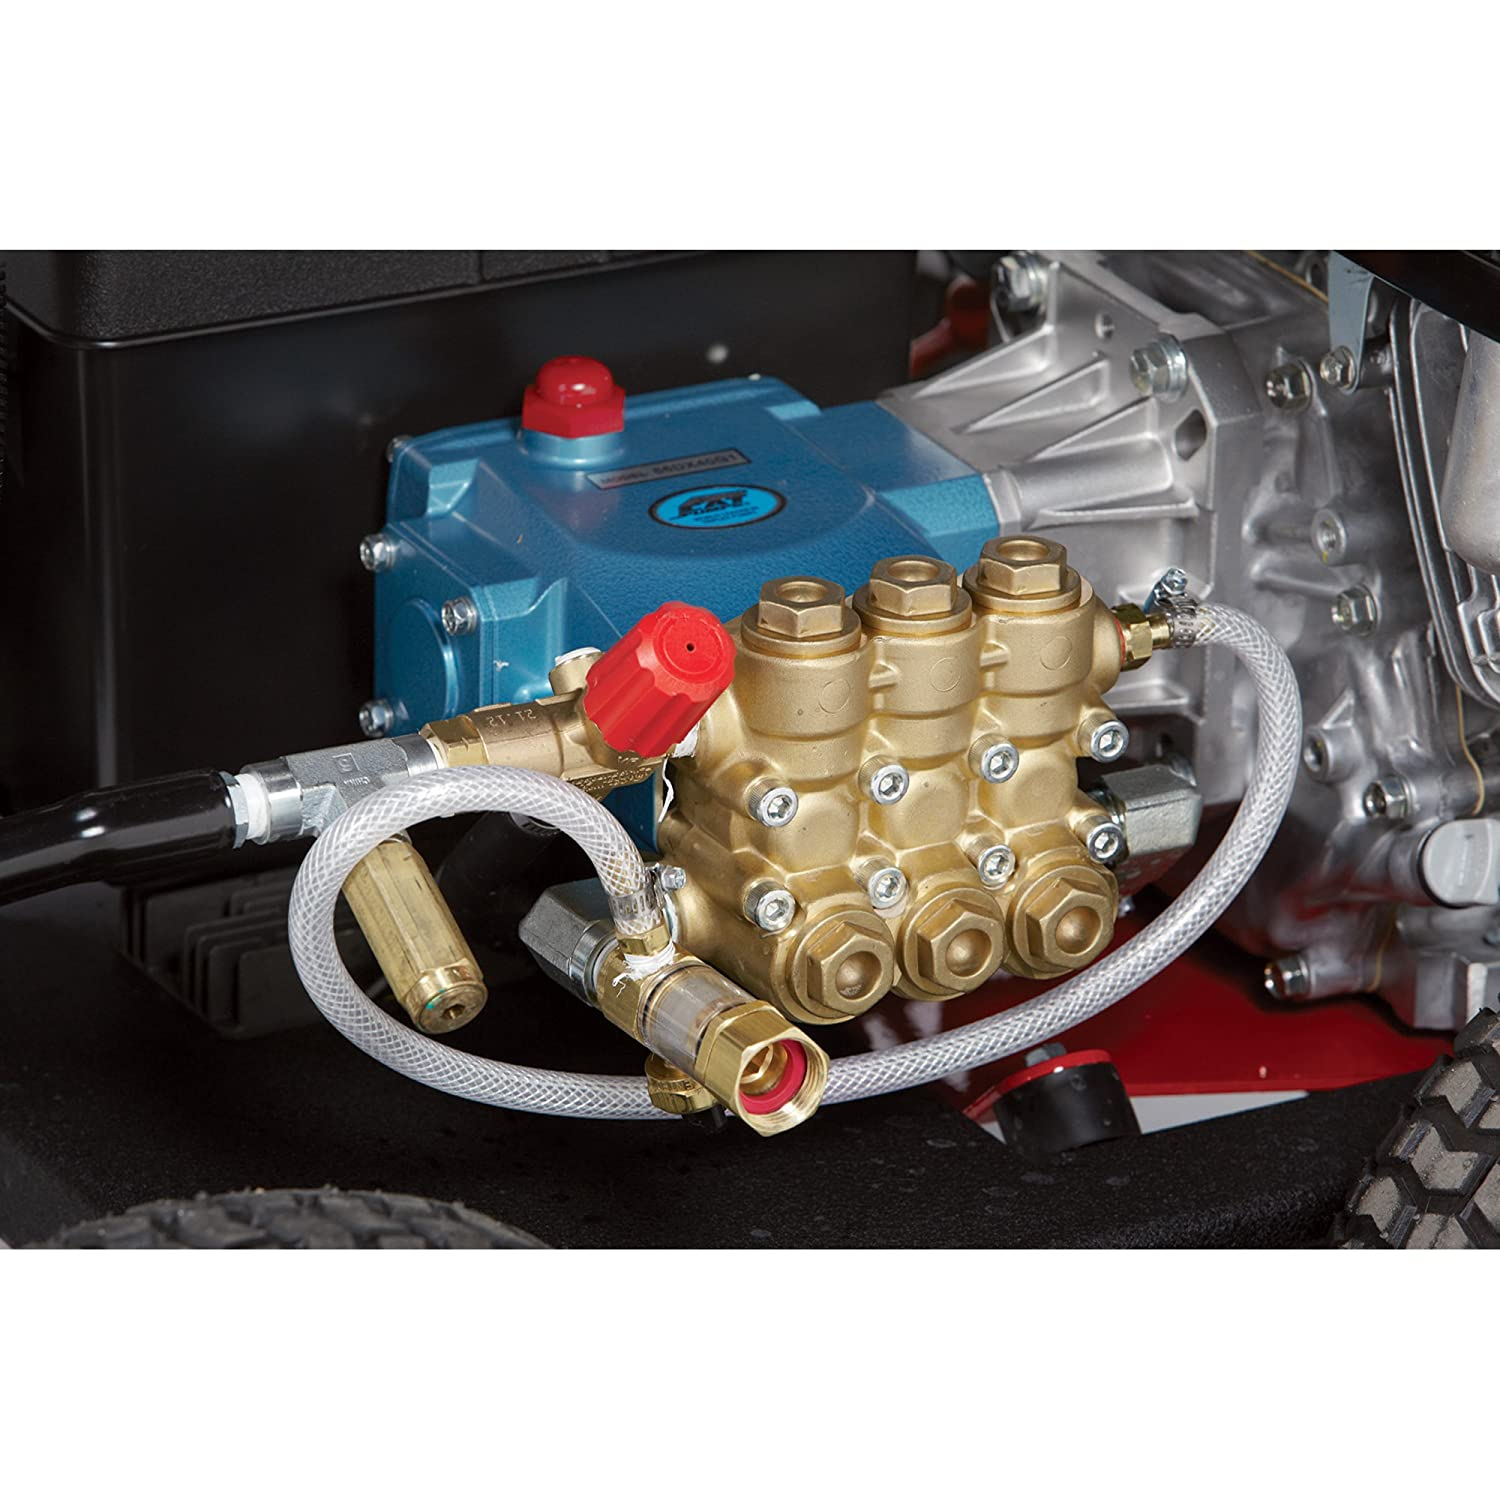 North Star Model 157310 Wiring Diagram Library Water Pressure Washer Amazoncom Northstar Gas Powered Wet Steam Hot 3